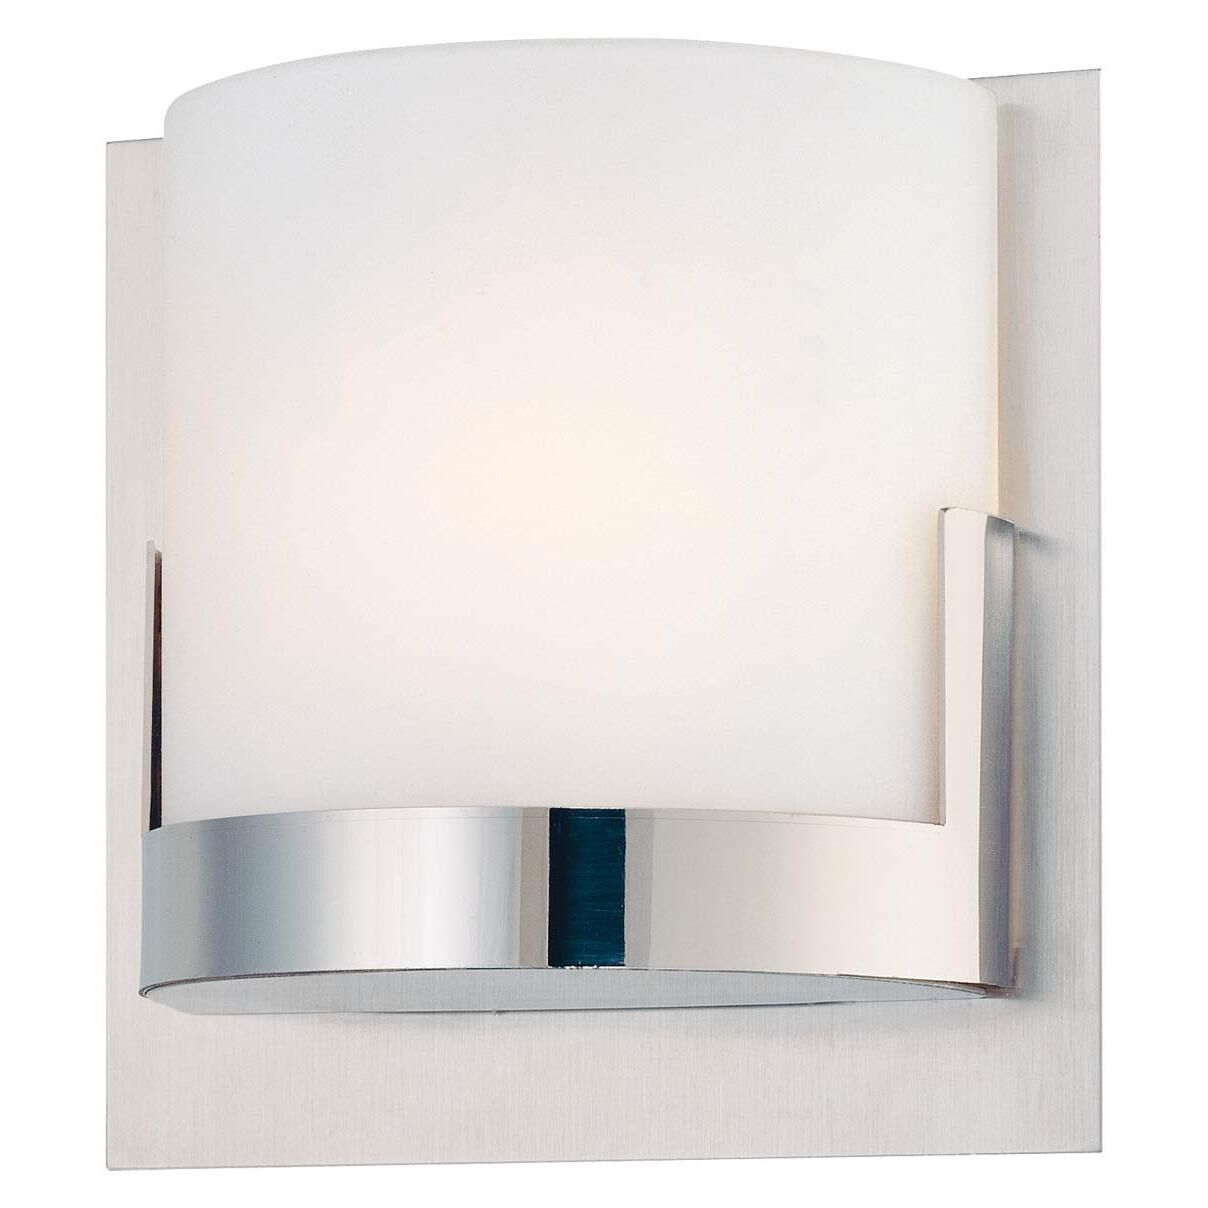 Kovacs Convex 5 Inch Wall Sconce Convex - P5952-077 - Transitional